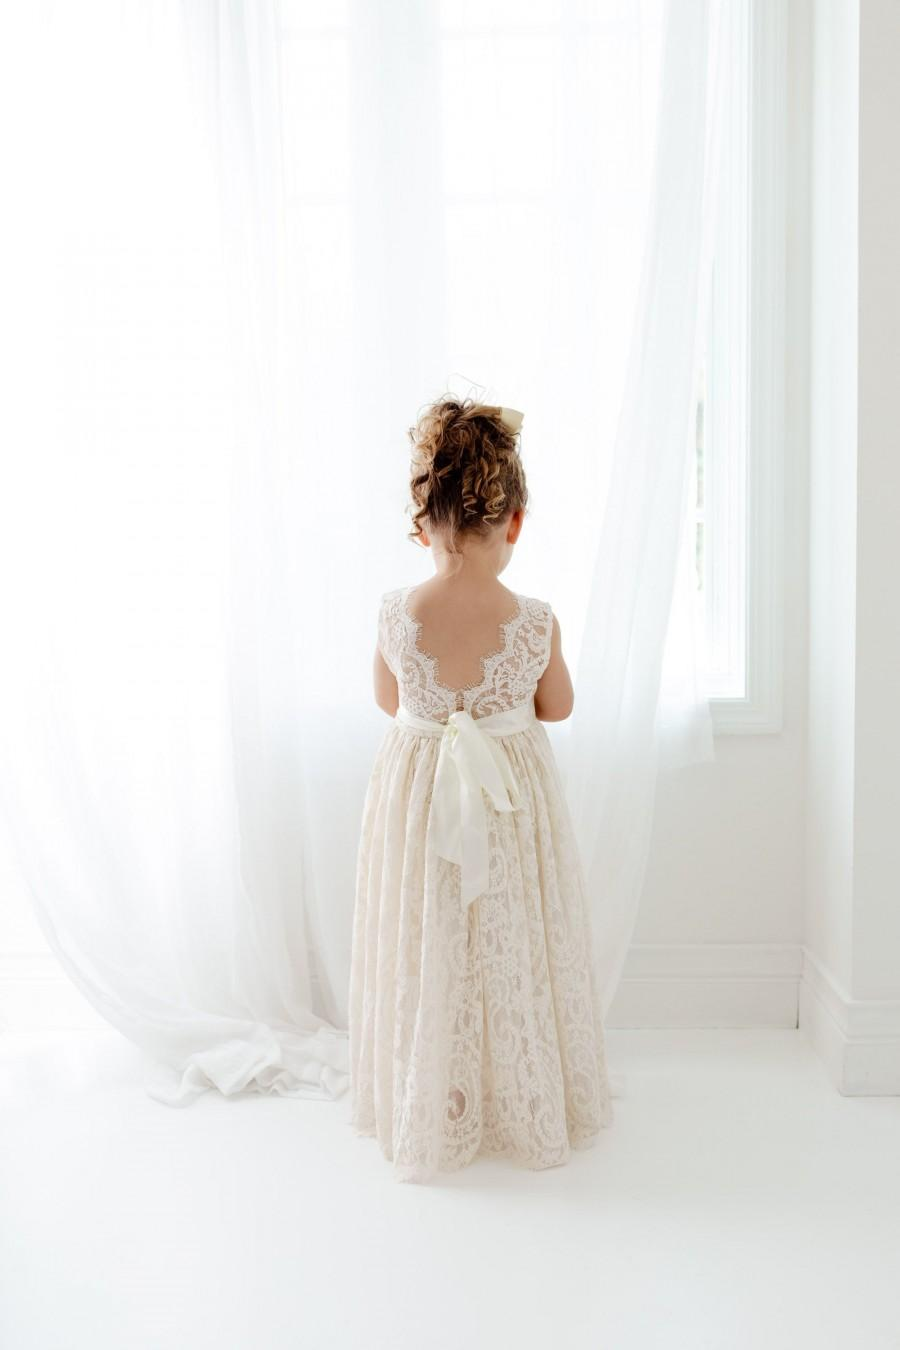 Wedding - Boho Lace Flower Girl Dress, Cream Tulle Wedding Dress, Beach Wedding Dress, Rustic Bohemian Dresses